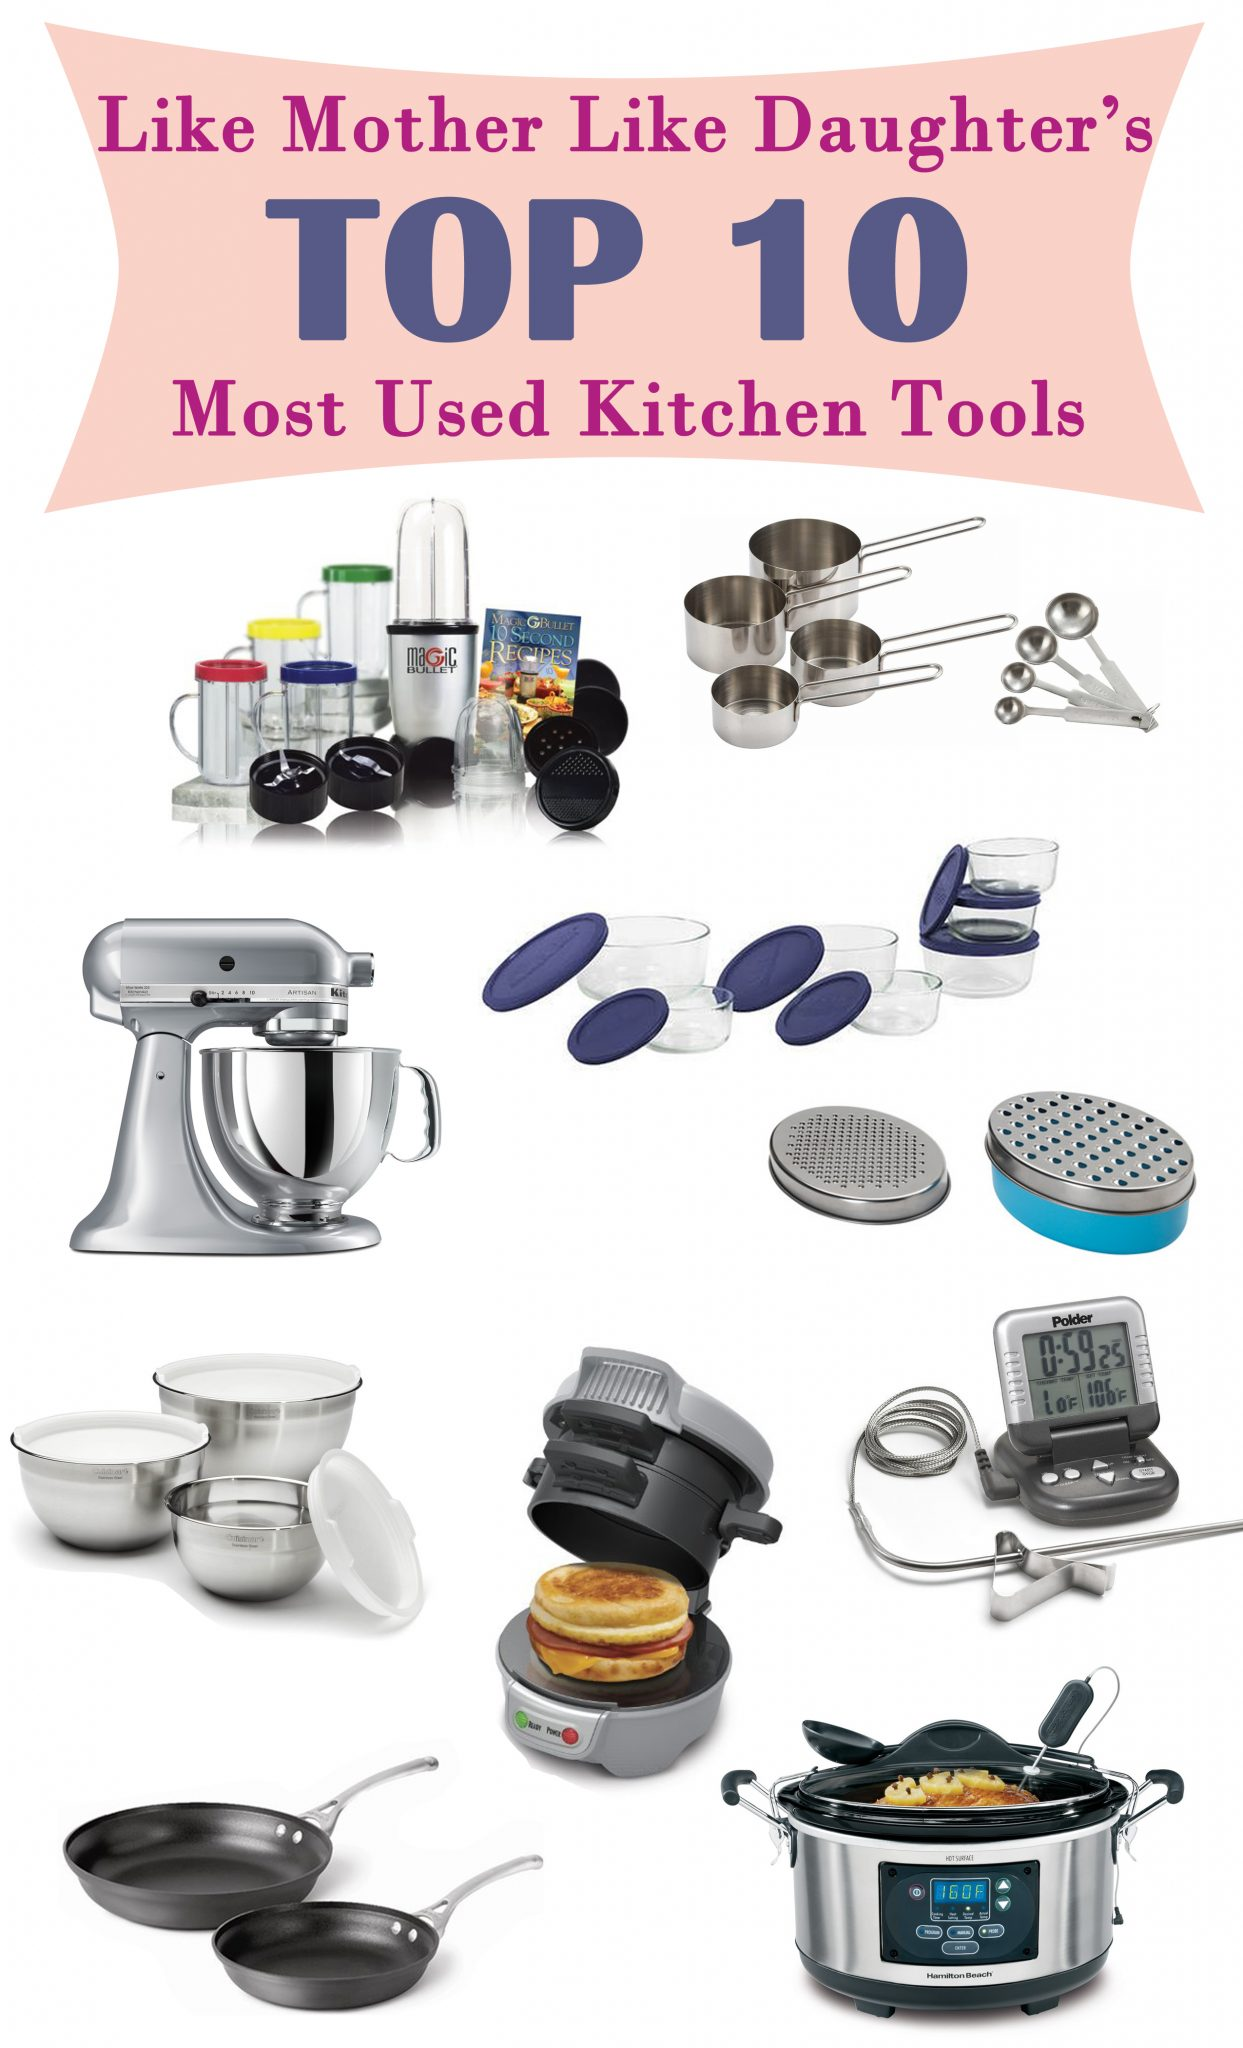 Top 10 kitchen tools used in lmld kitchens like mother for Kitchen equipment and their uses